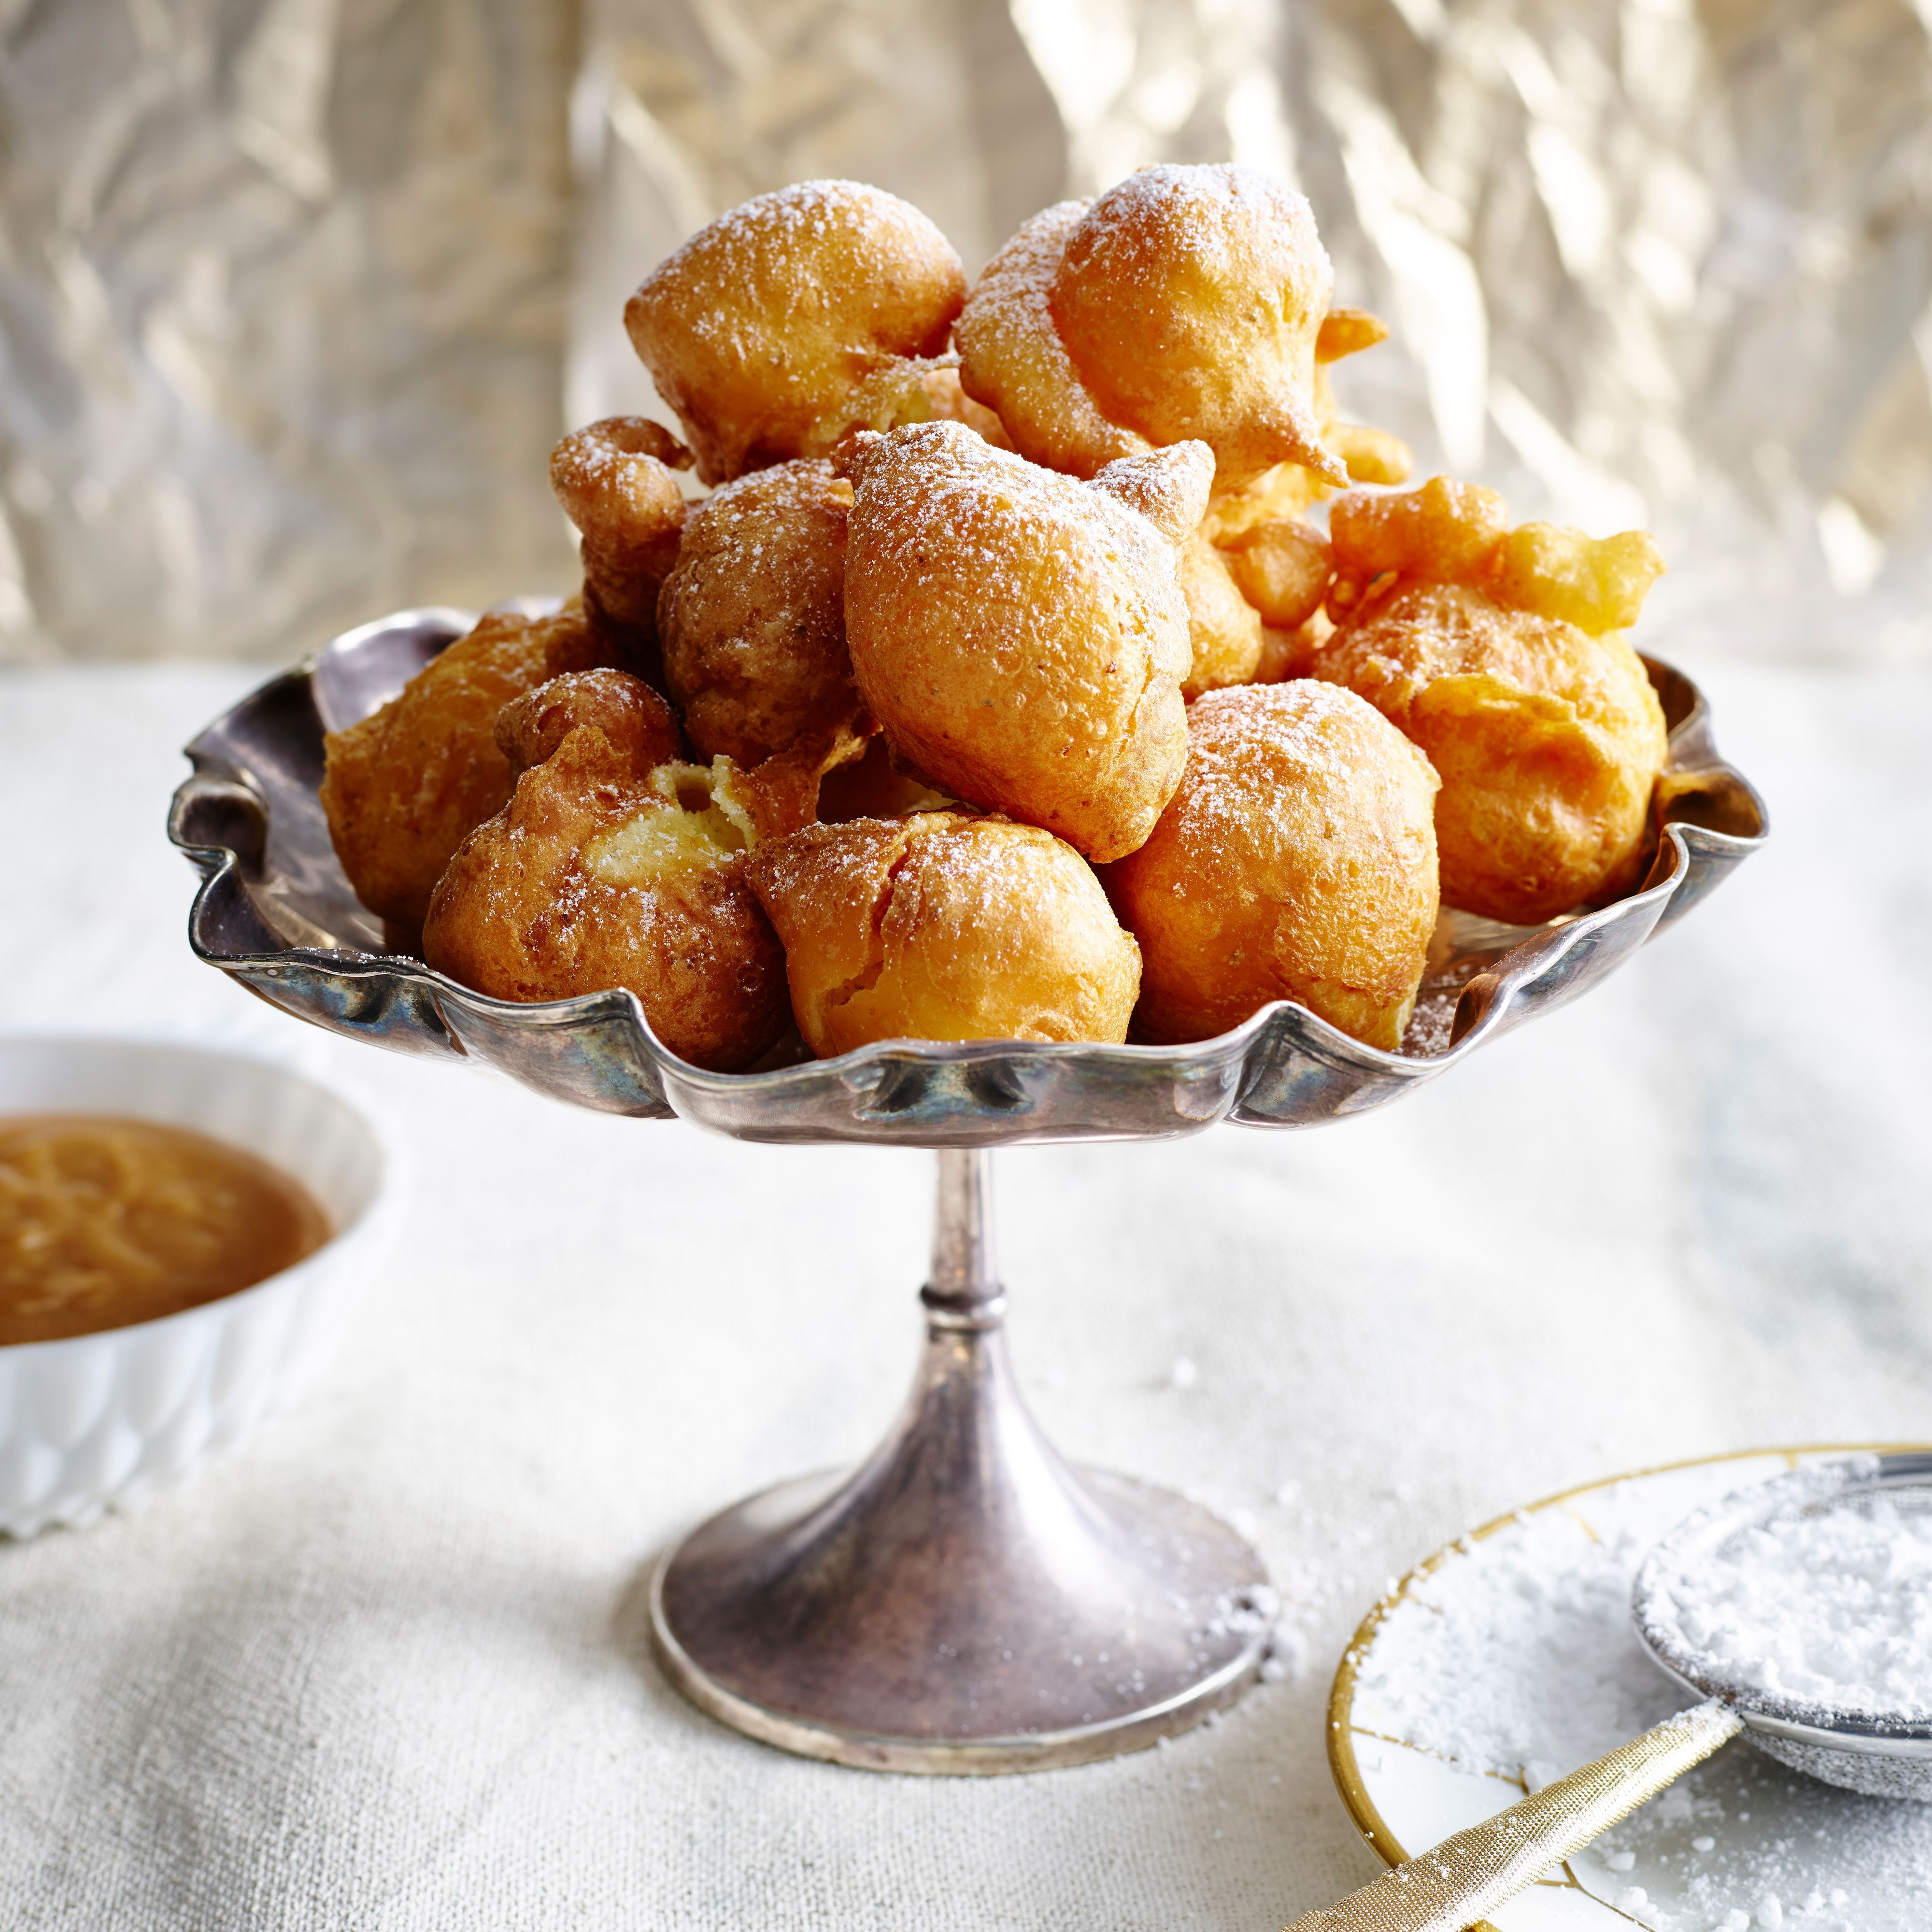 Bunuelos piled into silver serving dish dusted with icing sugar